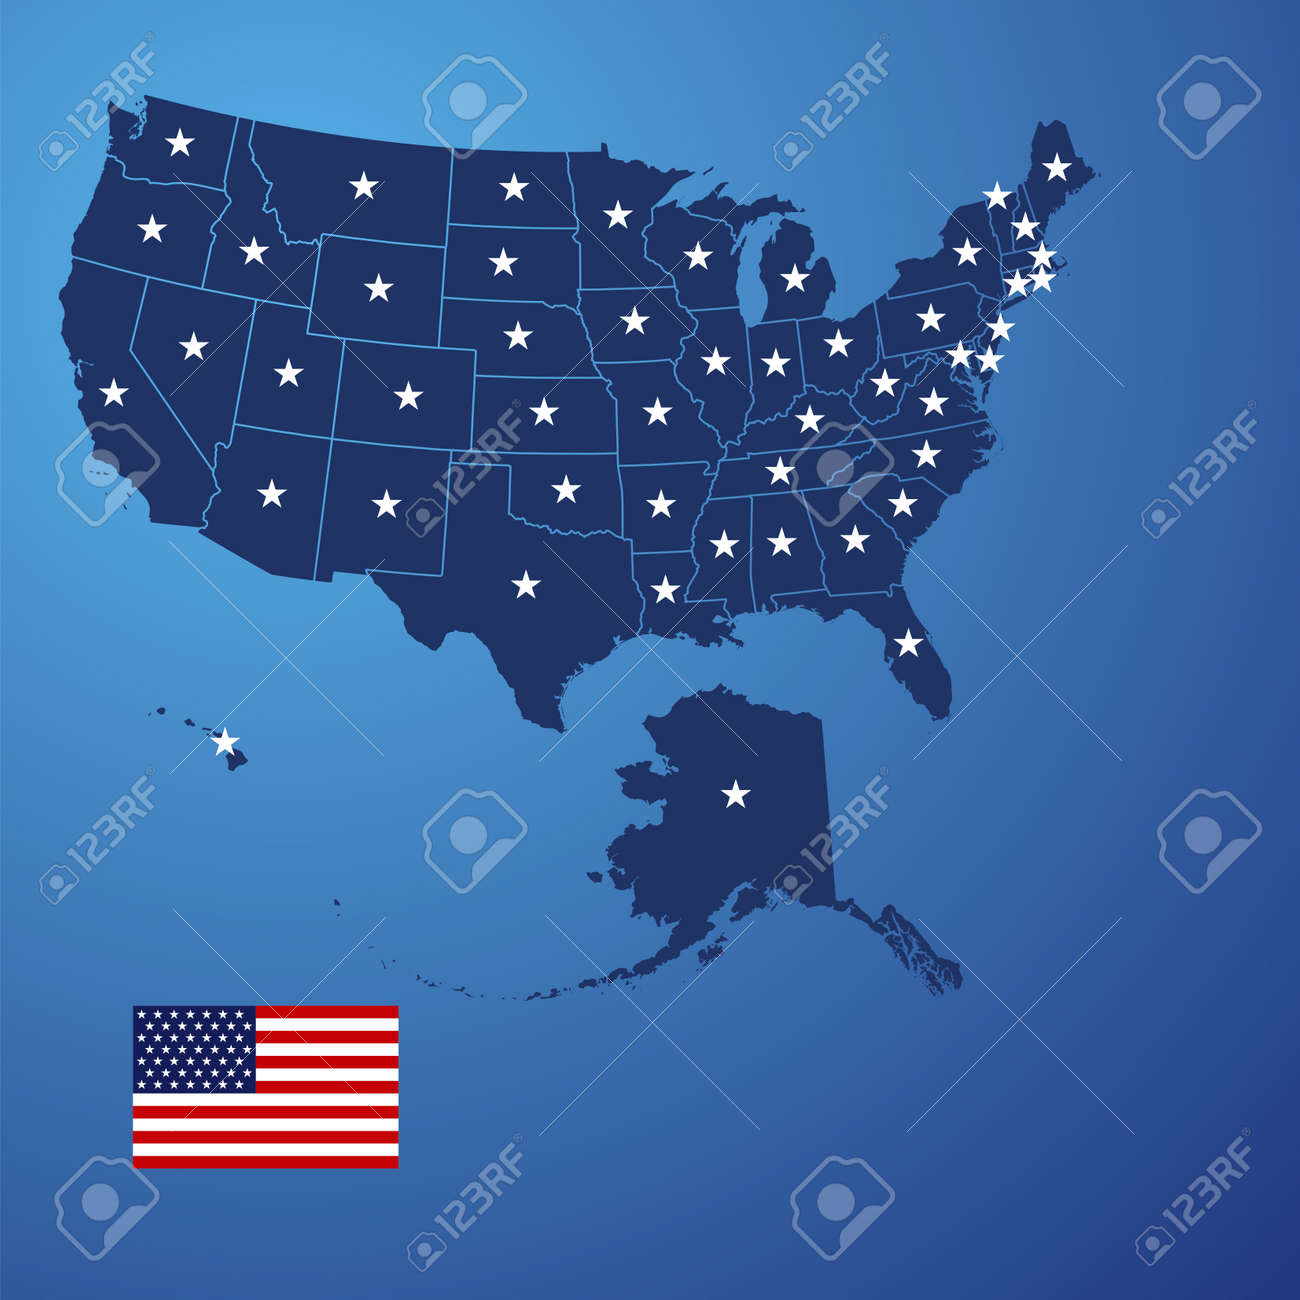 US Map Stars Vector Royalty Free Cliparts Vectors And Stock - Stars map from us